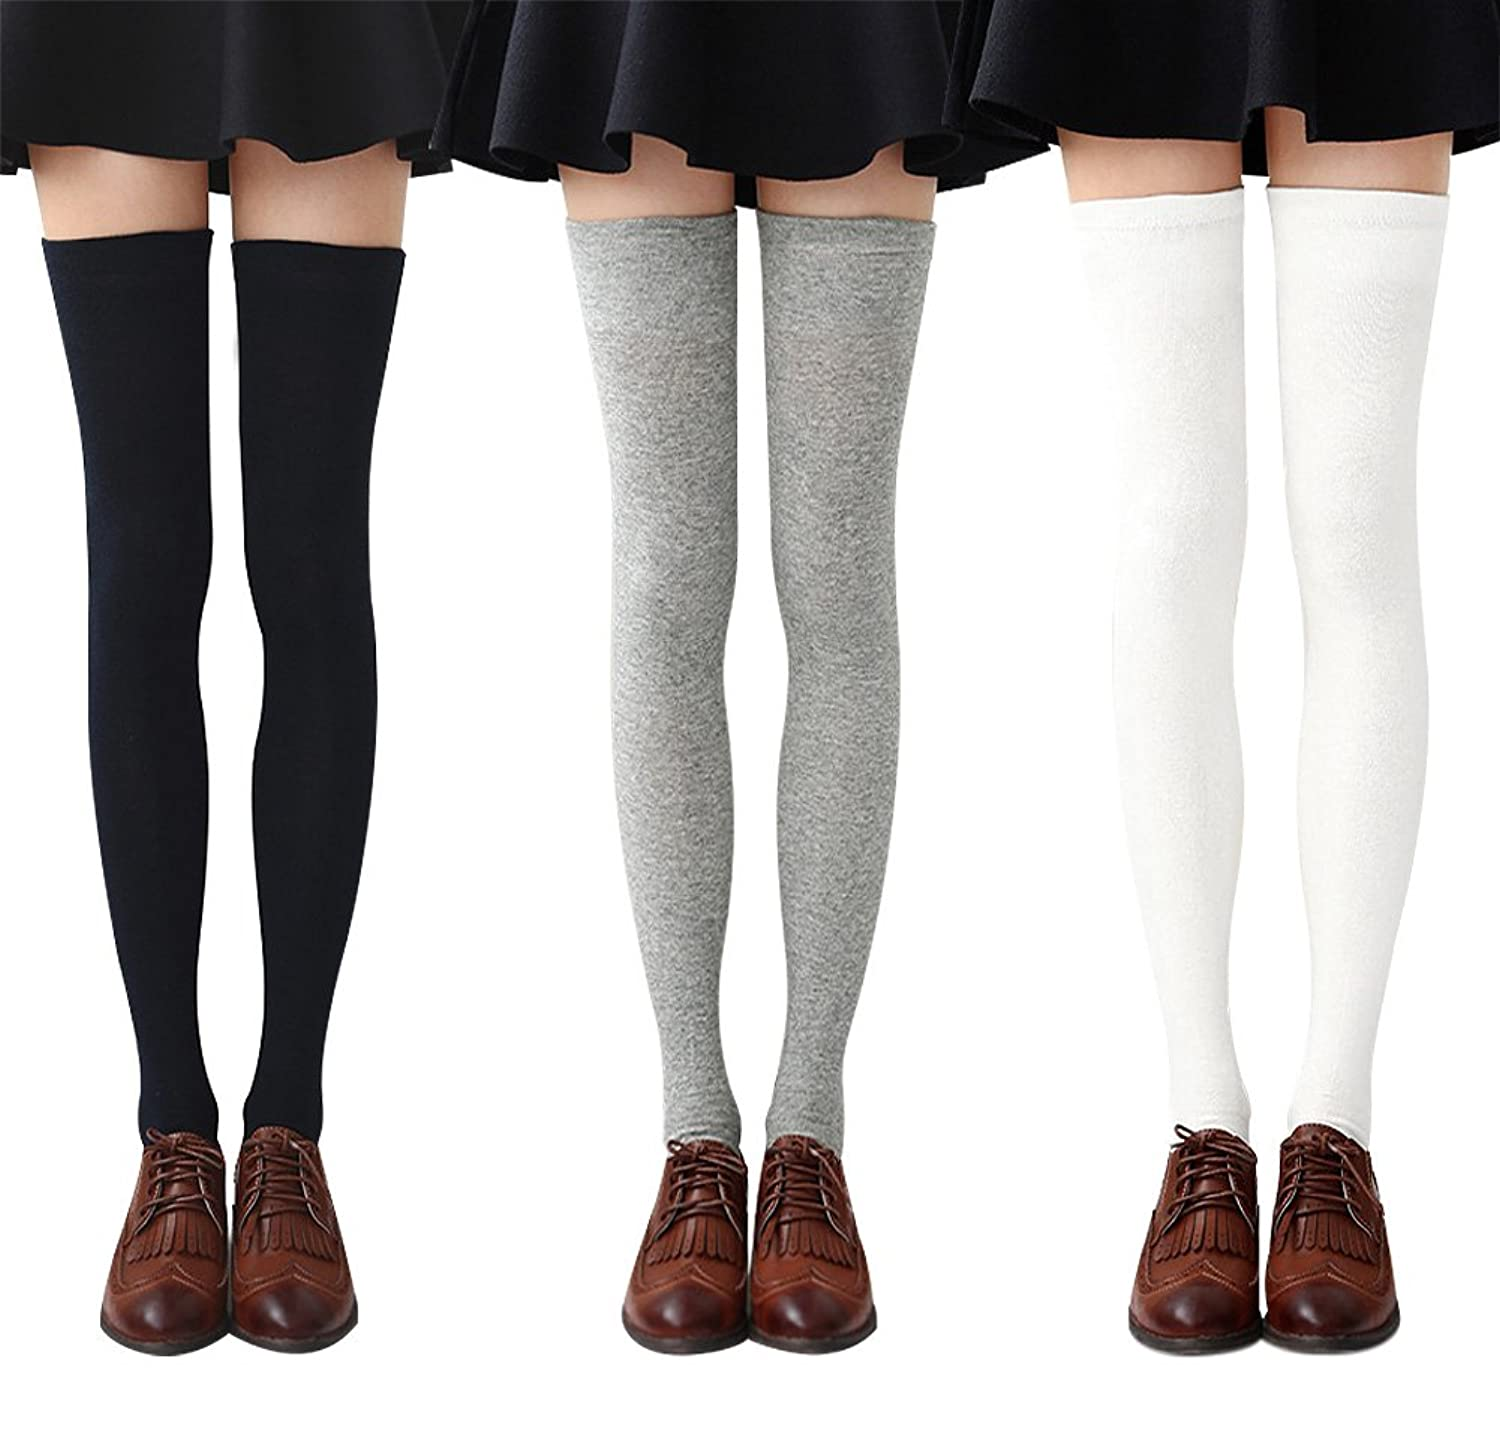 62a2fdca7ff GREAT MATERIAL - Our striped knee high socks are made from soft and  comfortable poly-cotton blends